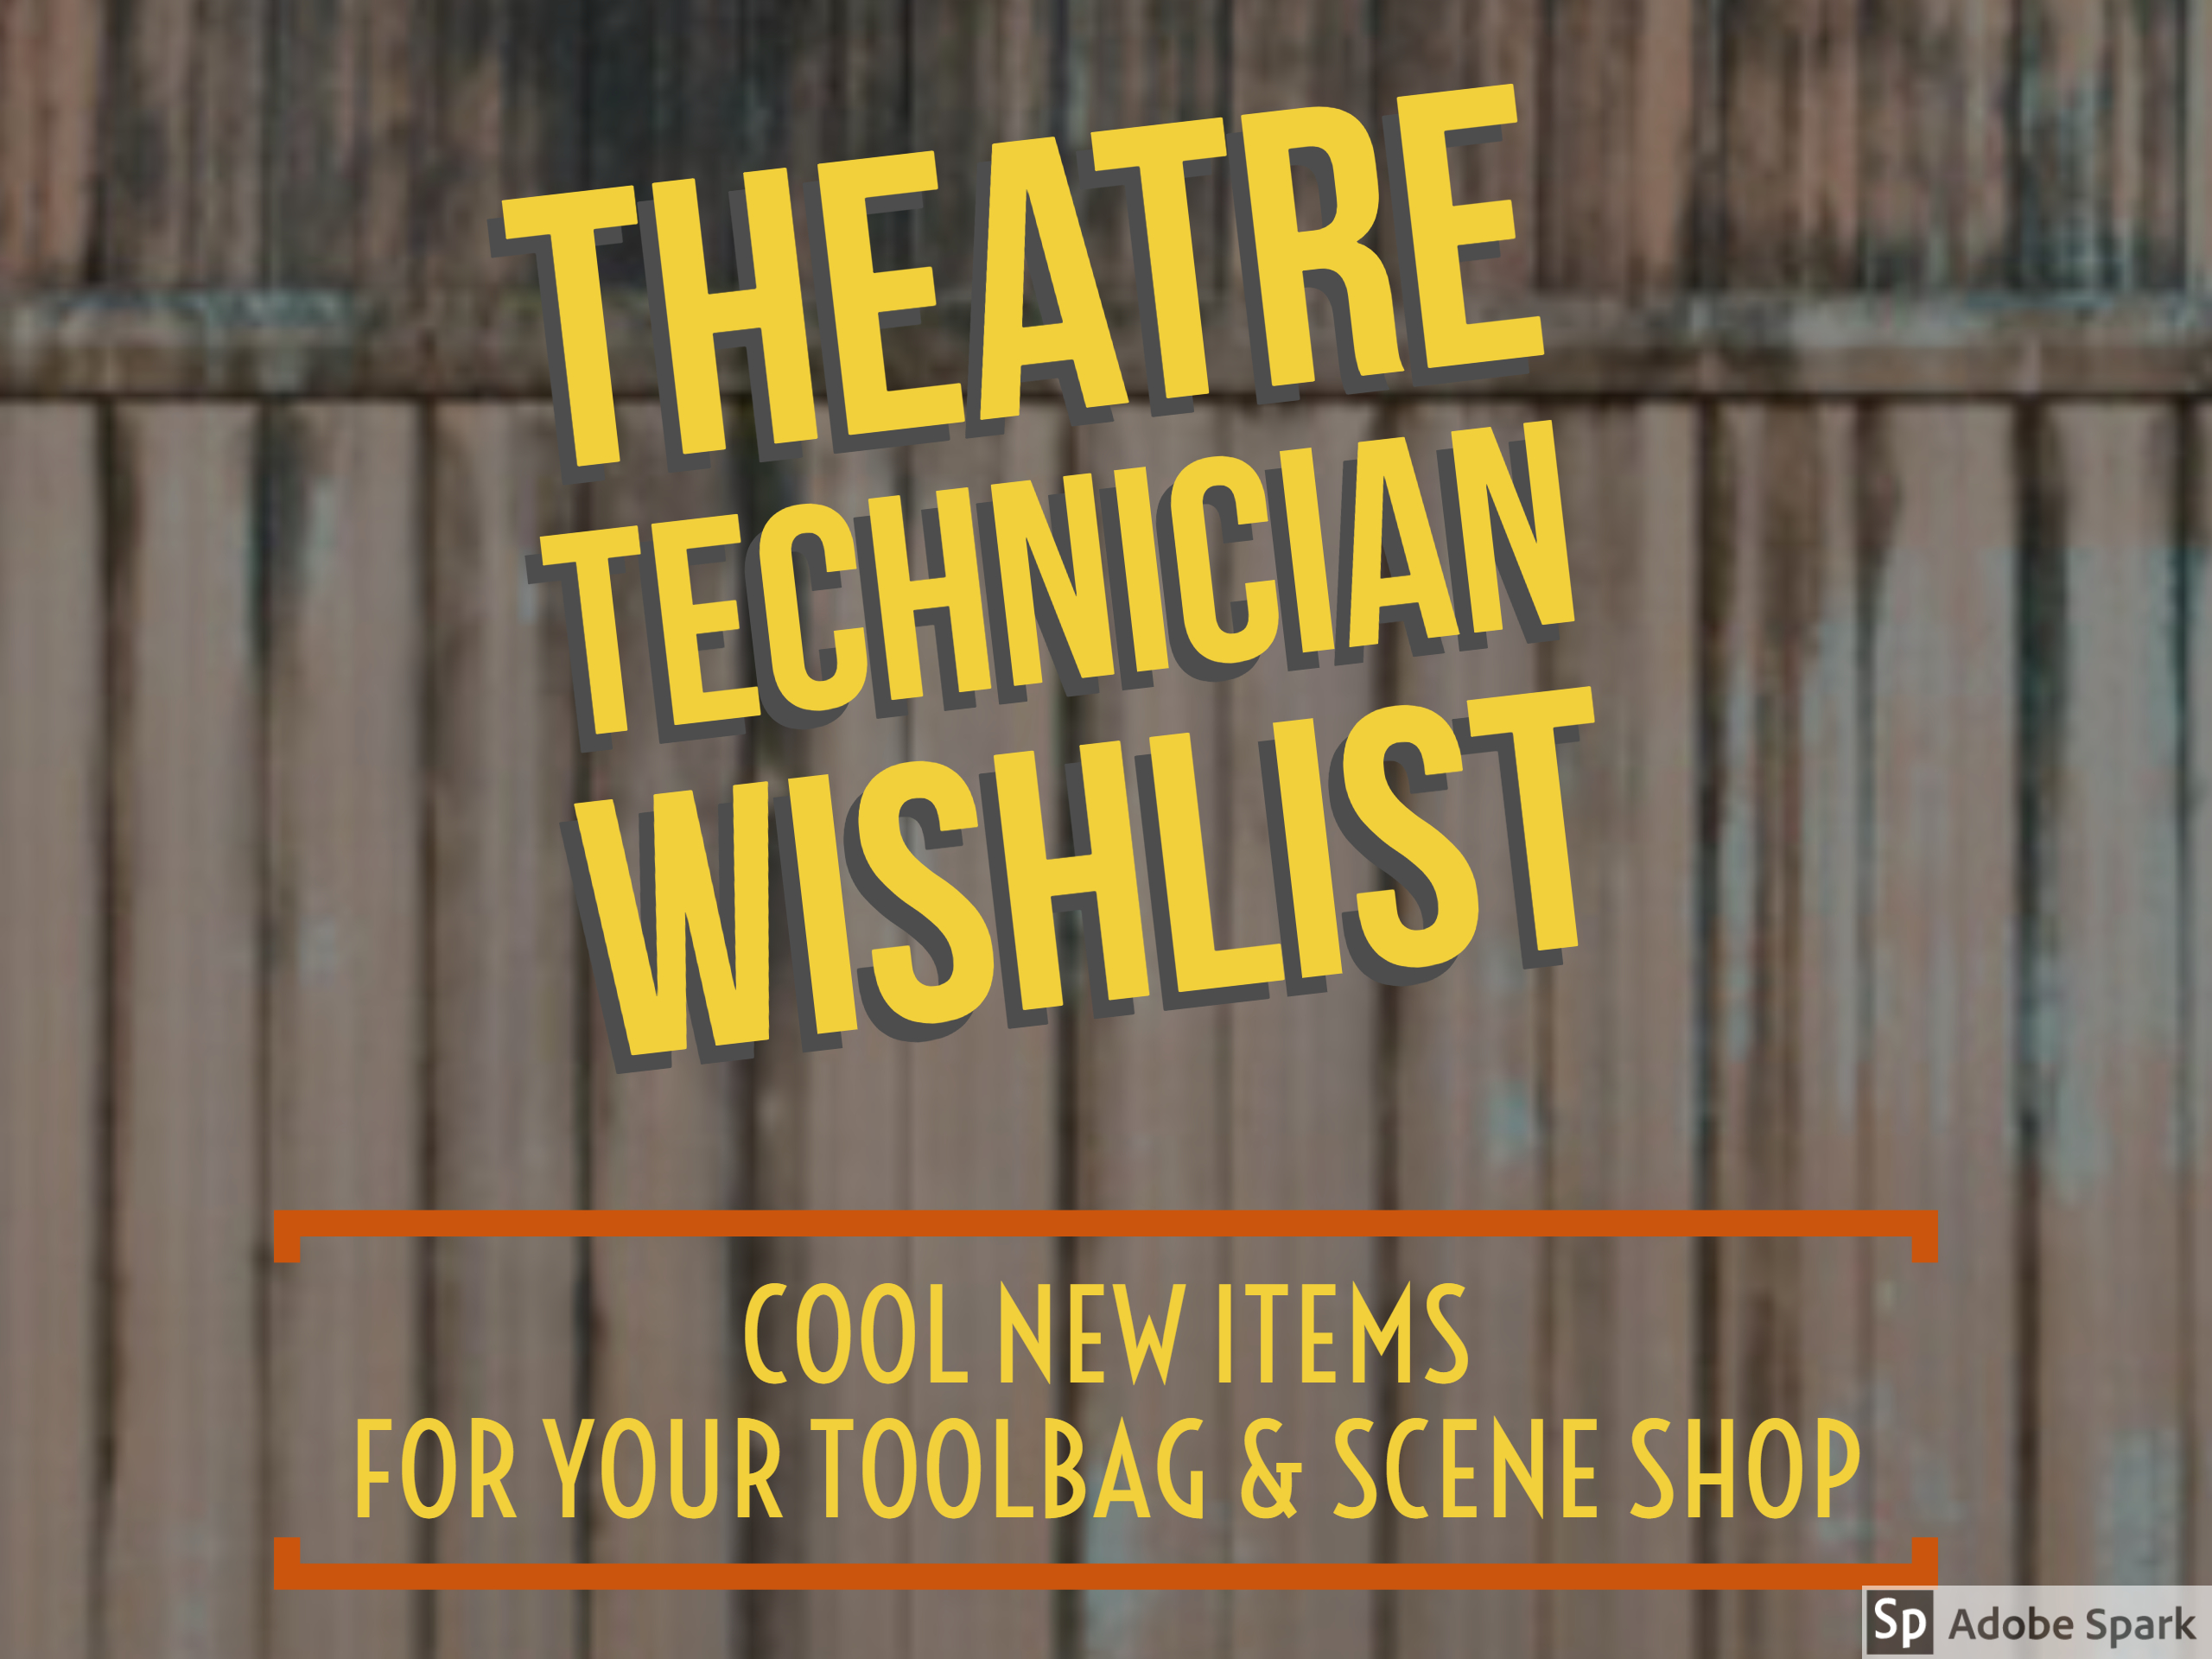 Theatre Technician Wishlist